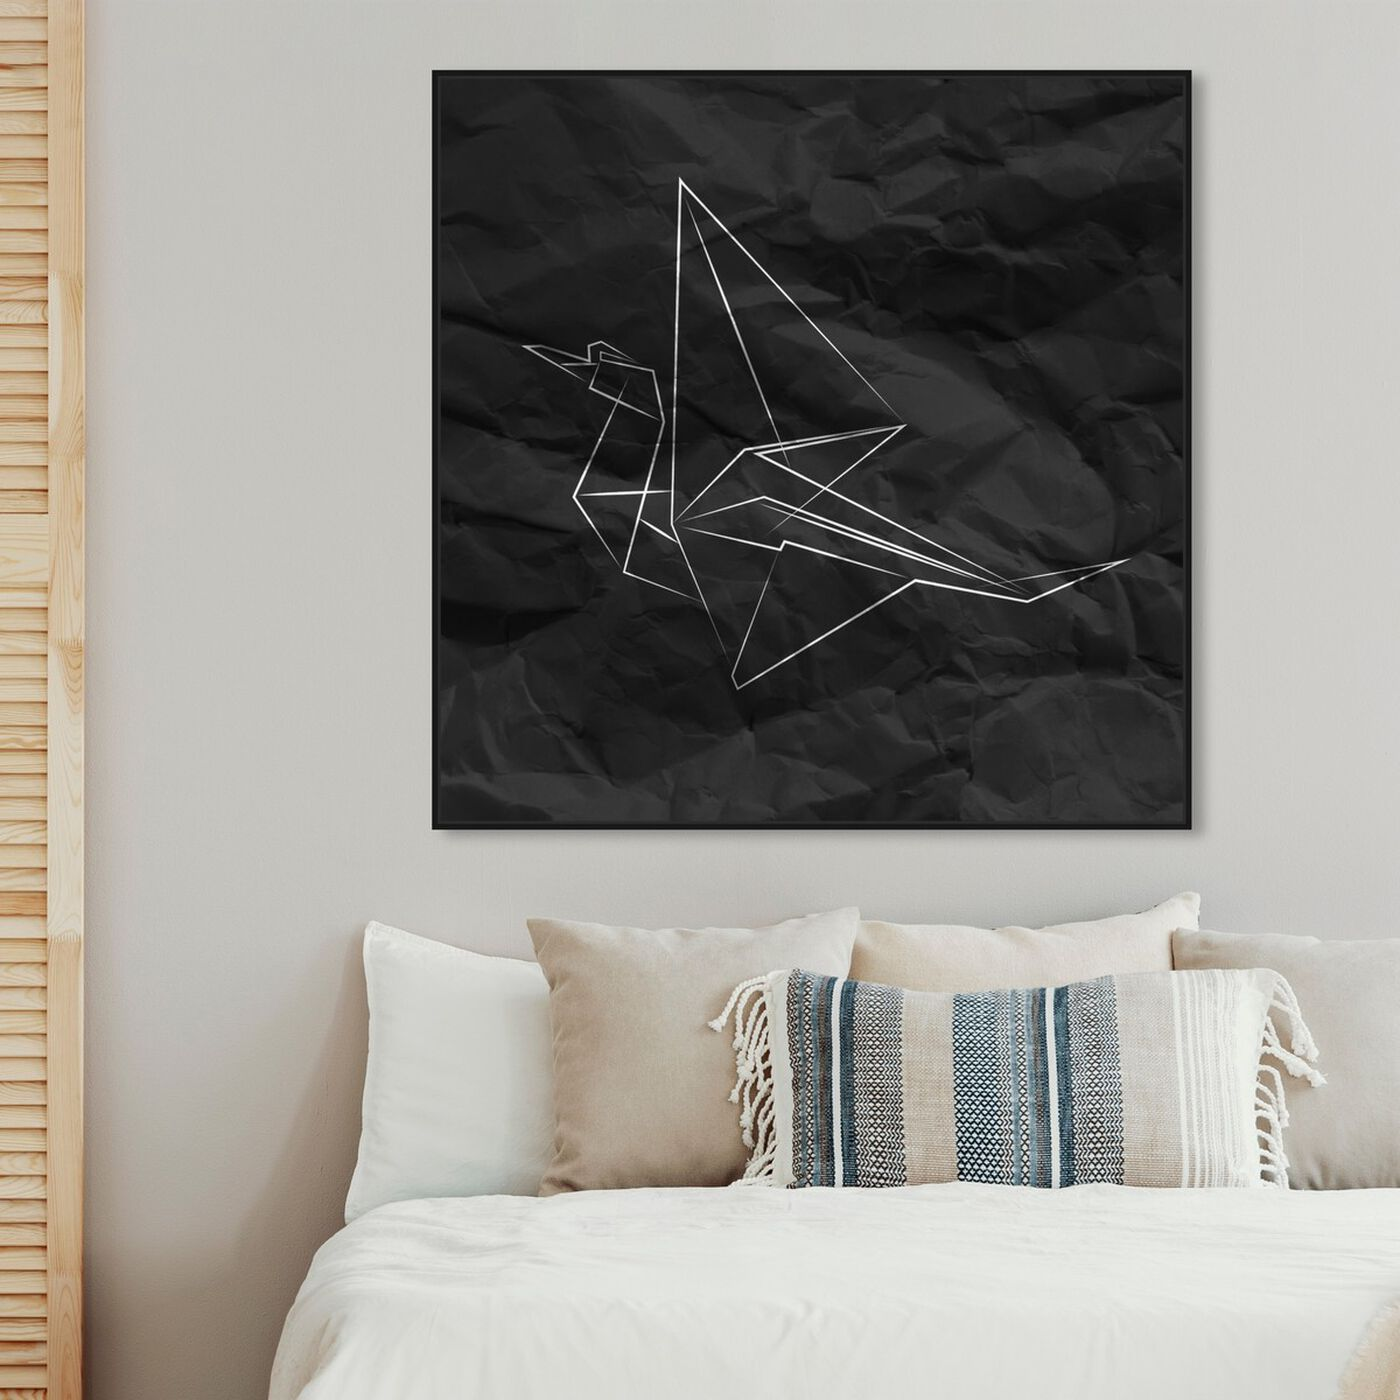 Hanging view of Origami Crane featuring abstract and geometric art.